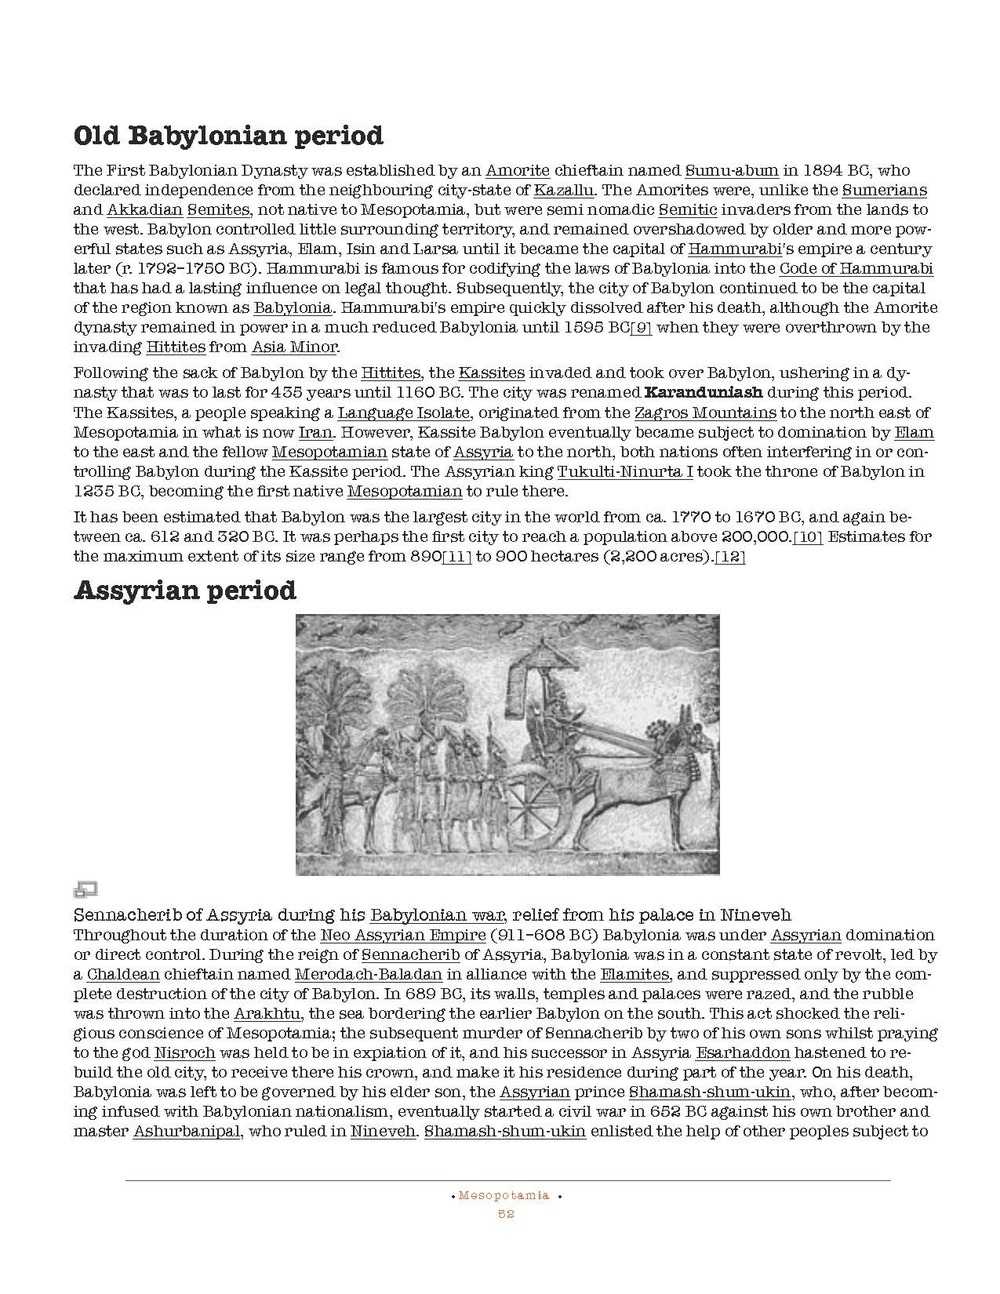 HOCE- Fertile Crescent Notes_Page_052.jpg